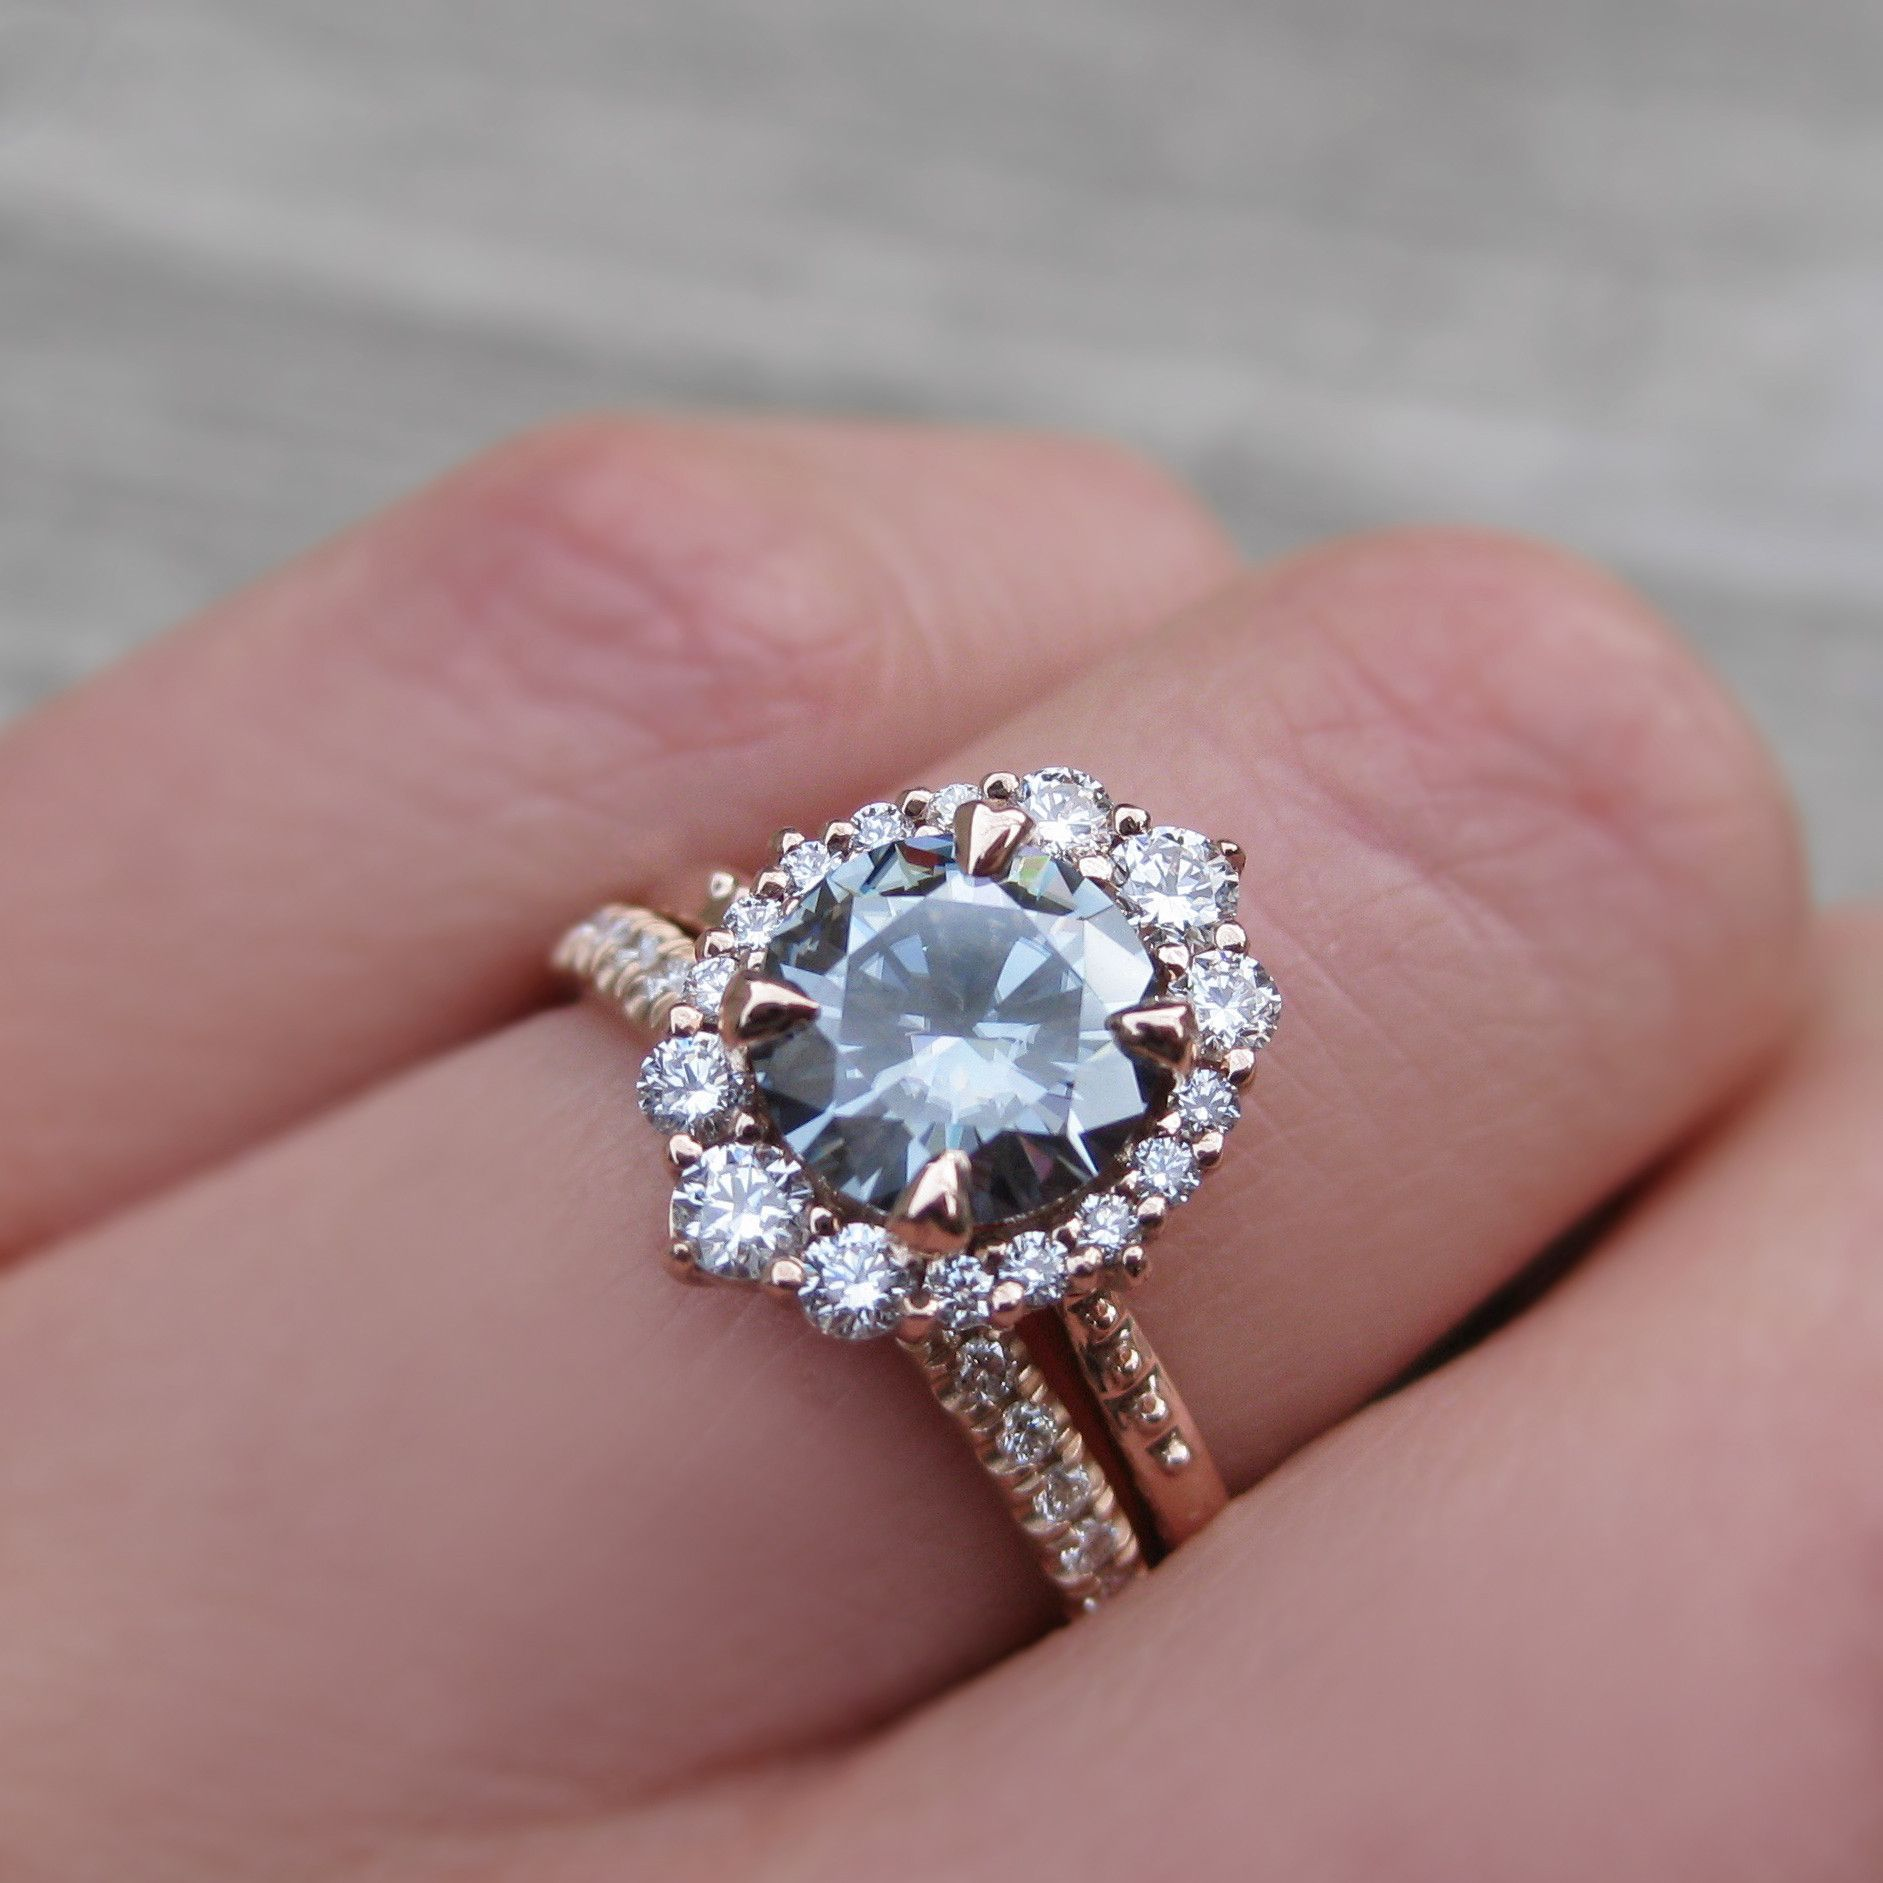 win the of co worth blog wedding ring blush rings london your victorian engagement with